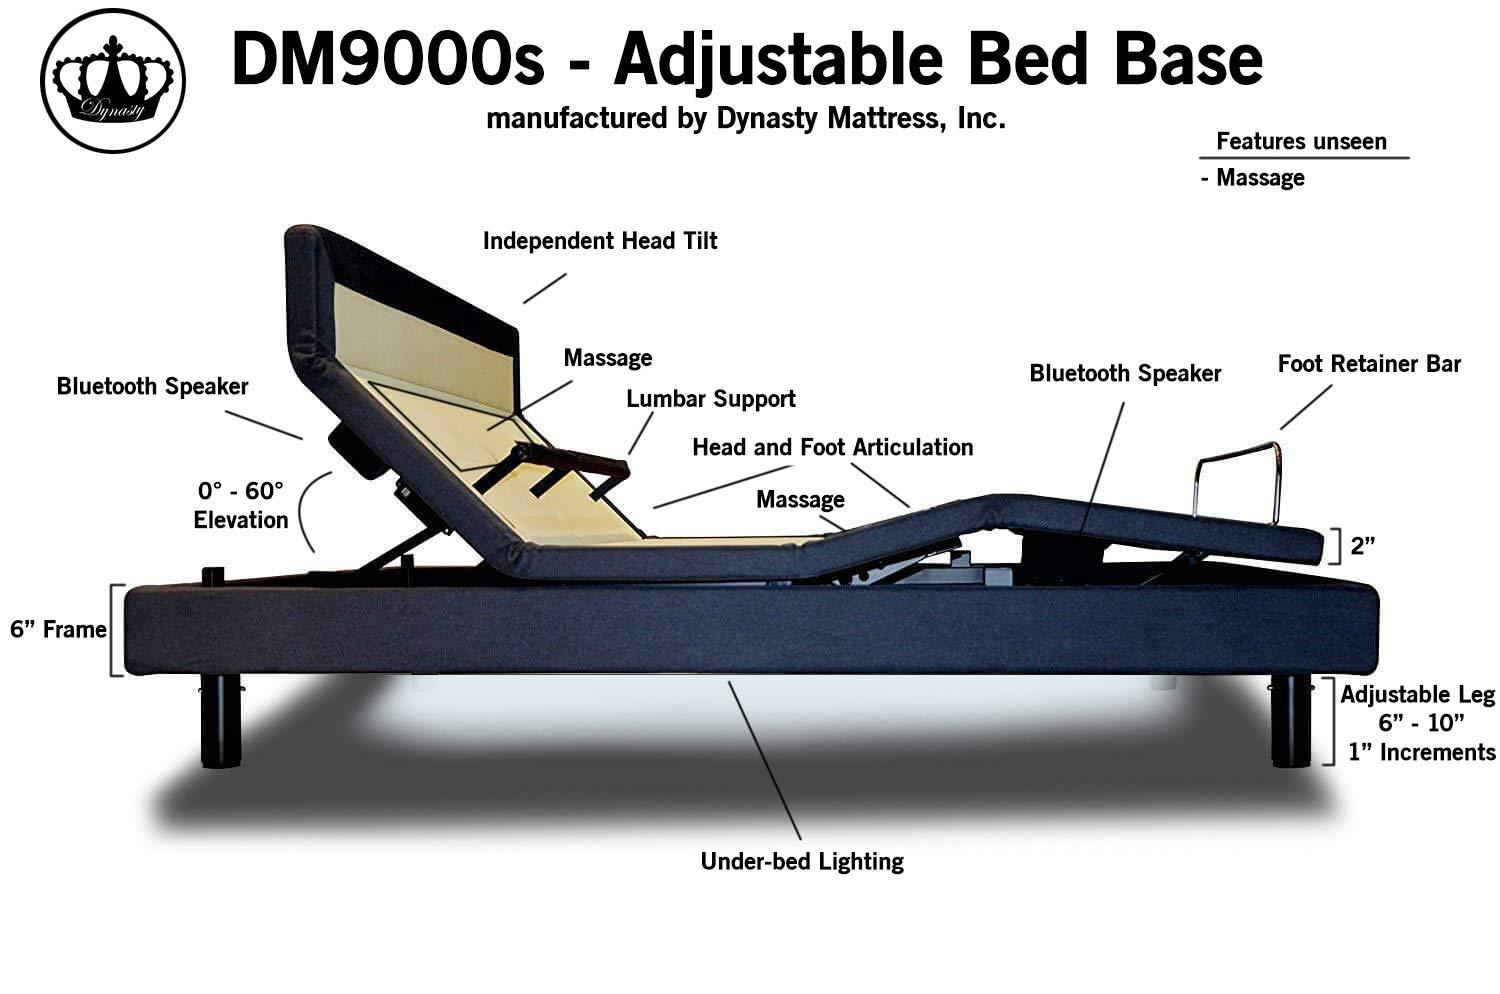 Best Split King Adjustable Beds - DM9000s DynastyMattress